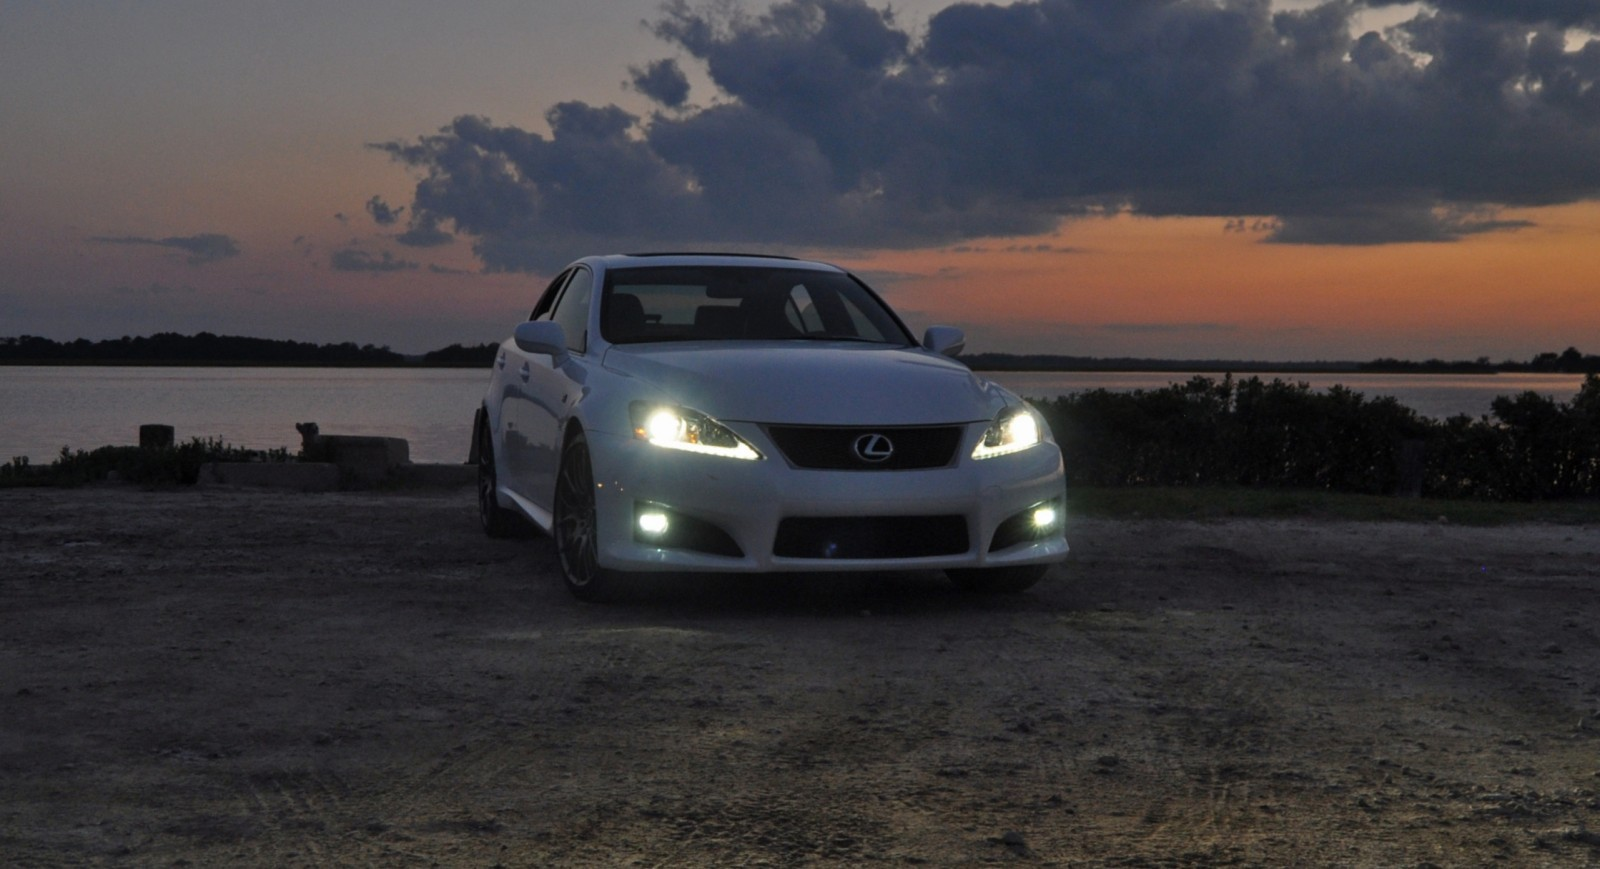 2014 Lexus IS-F Looking Sublime in Sunset Photo Shoot 2